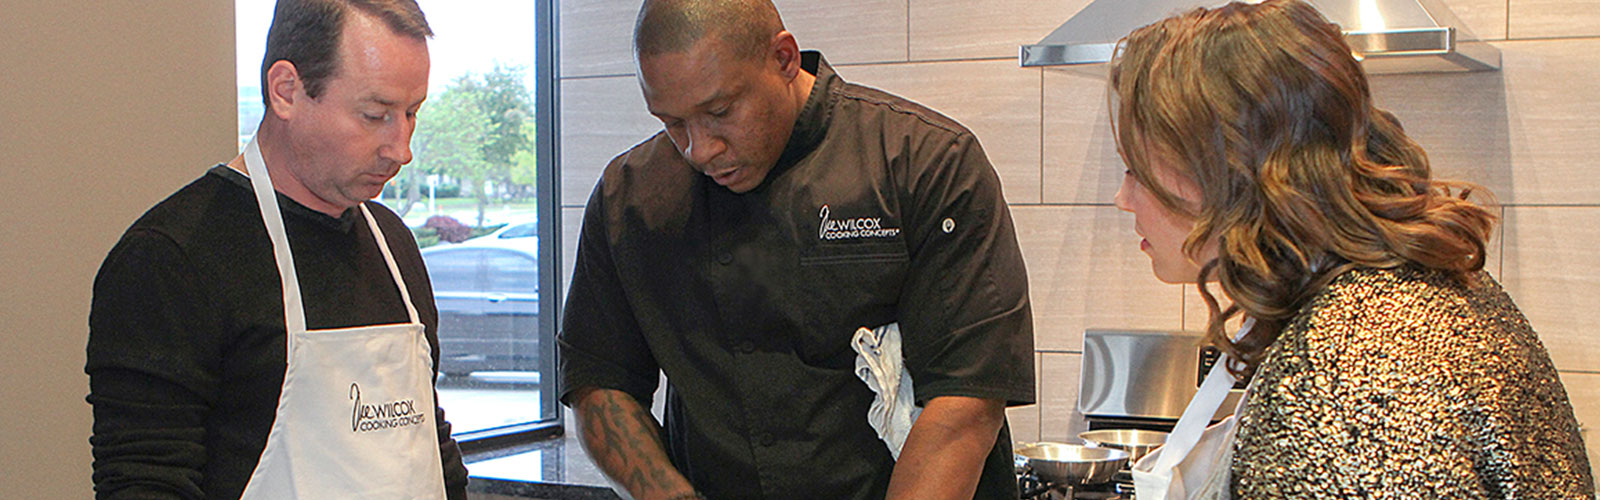 TRE Cooking Concepts - About Tre Wilcox